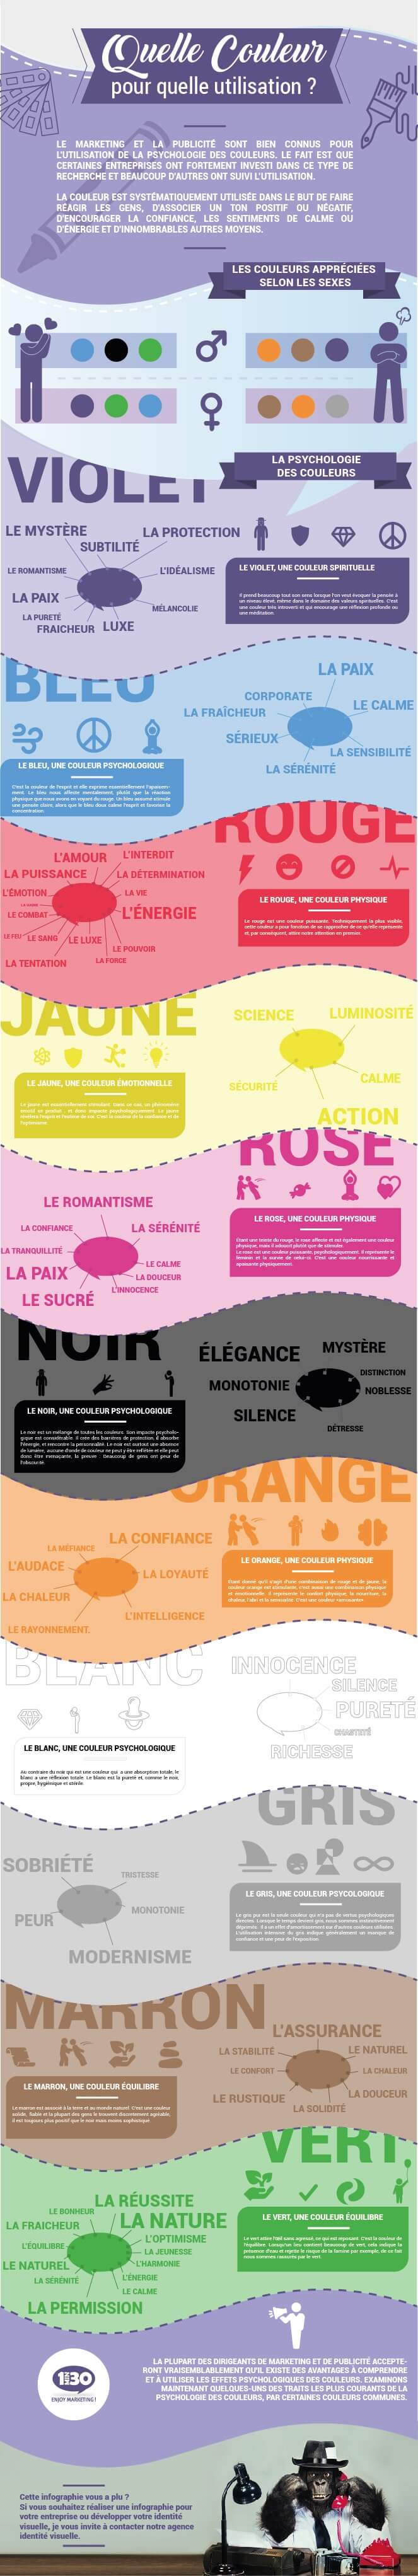 les couleurs et le marketing